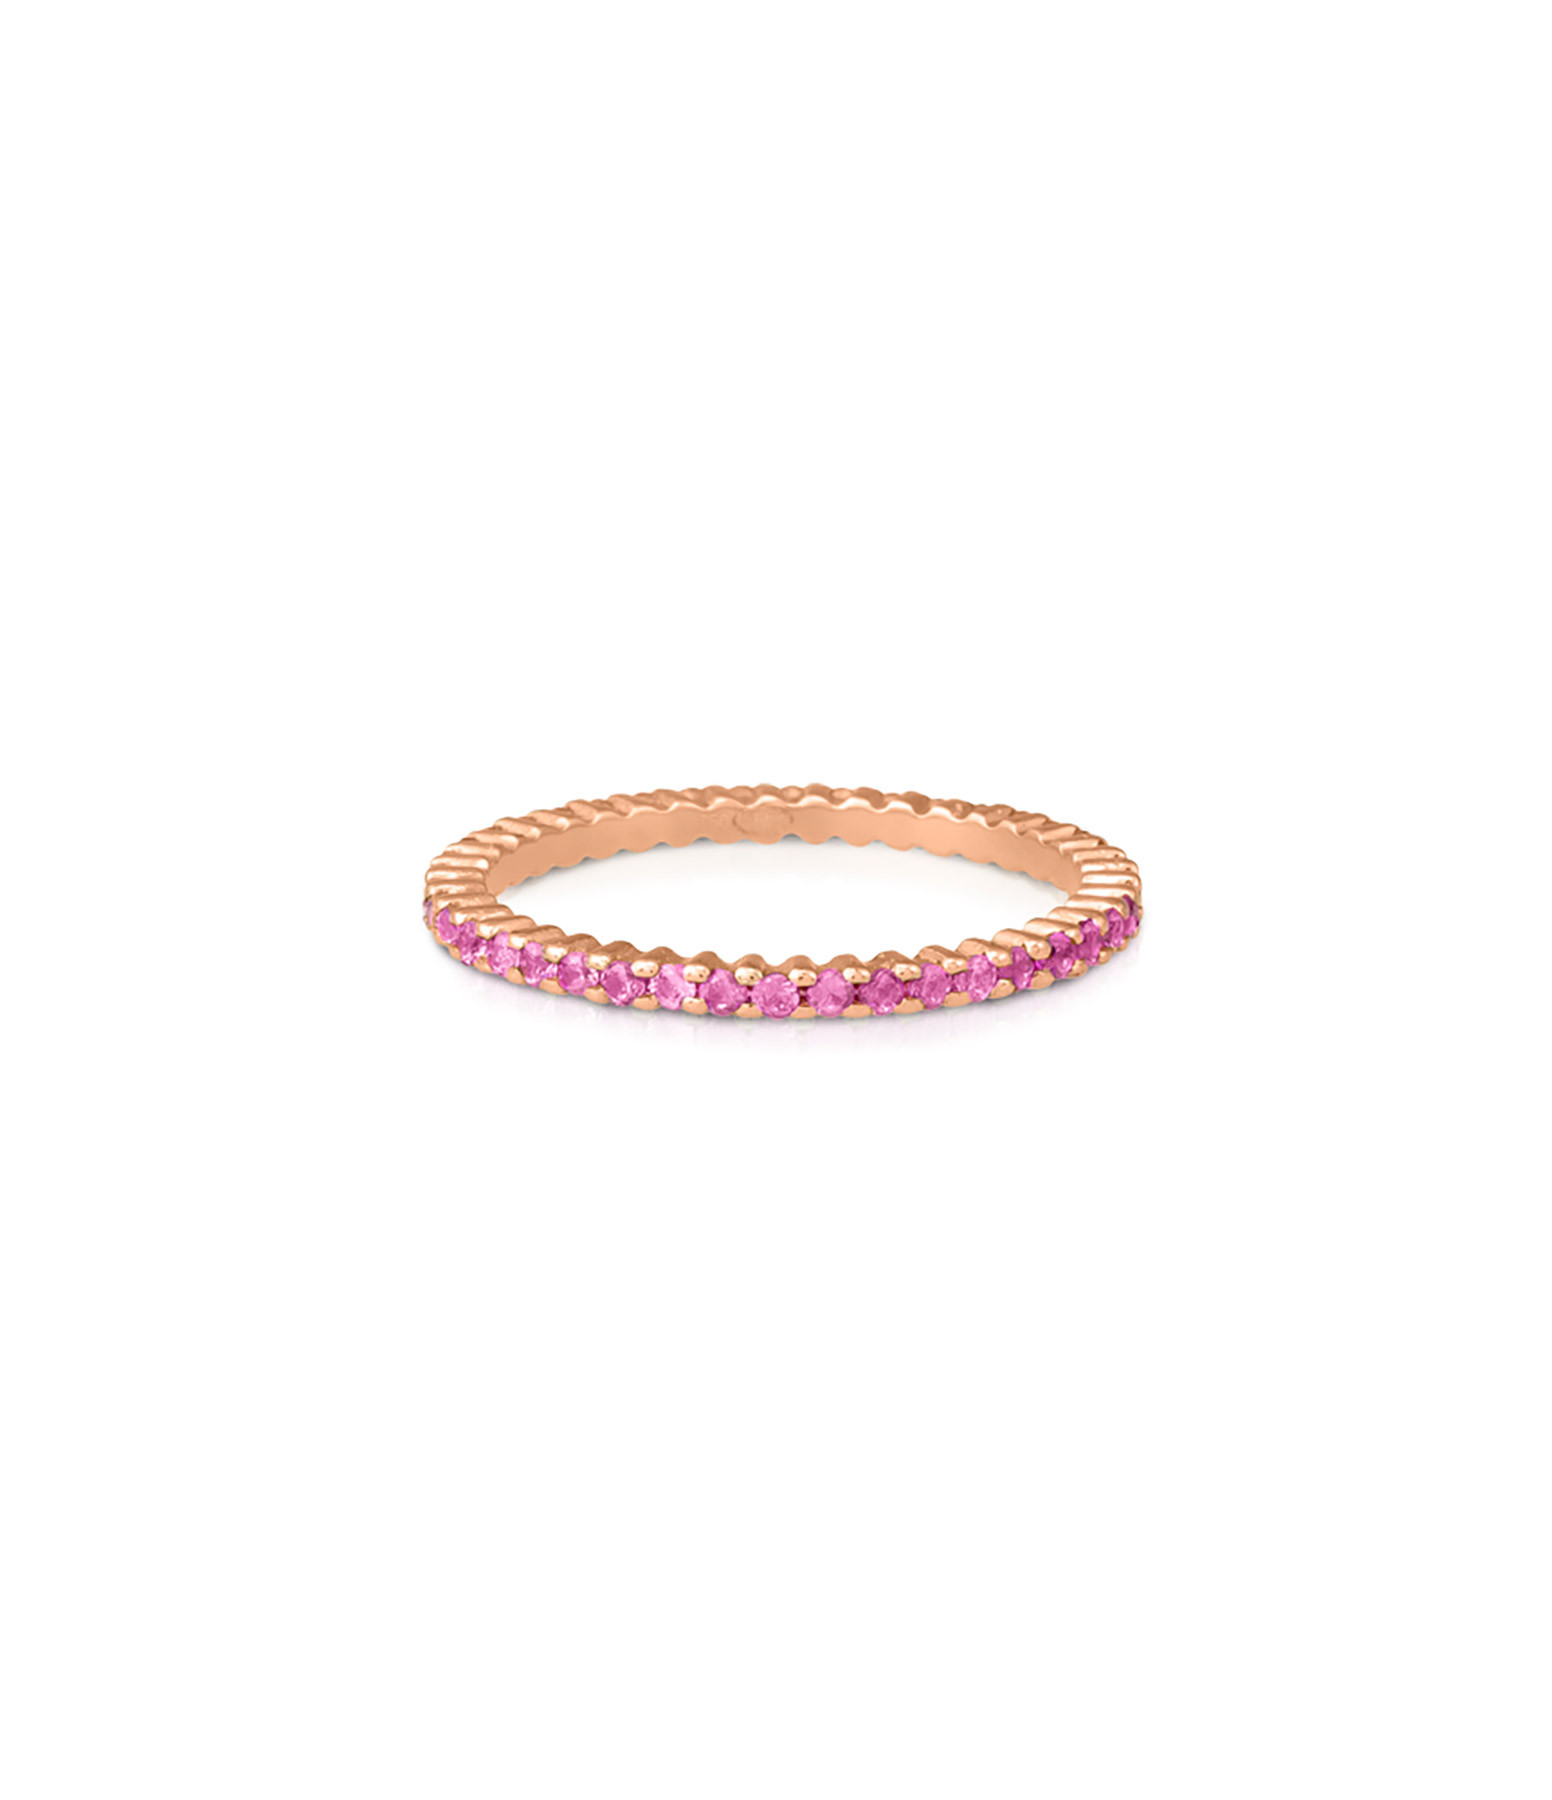 GINETTE NY - Bague Alliance French Kiss Saphirs Roses Or Rose